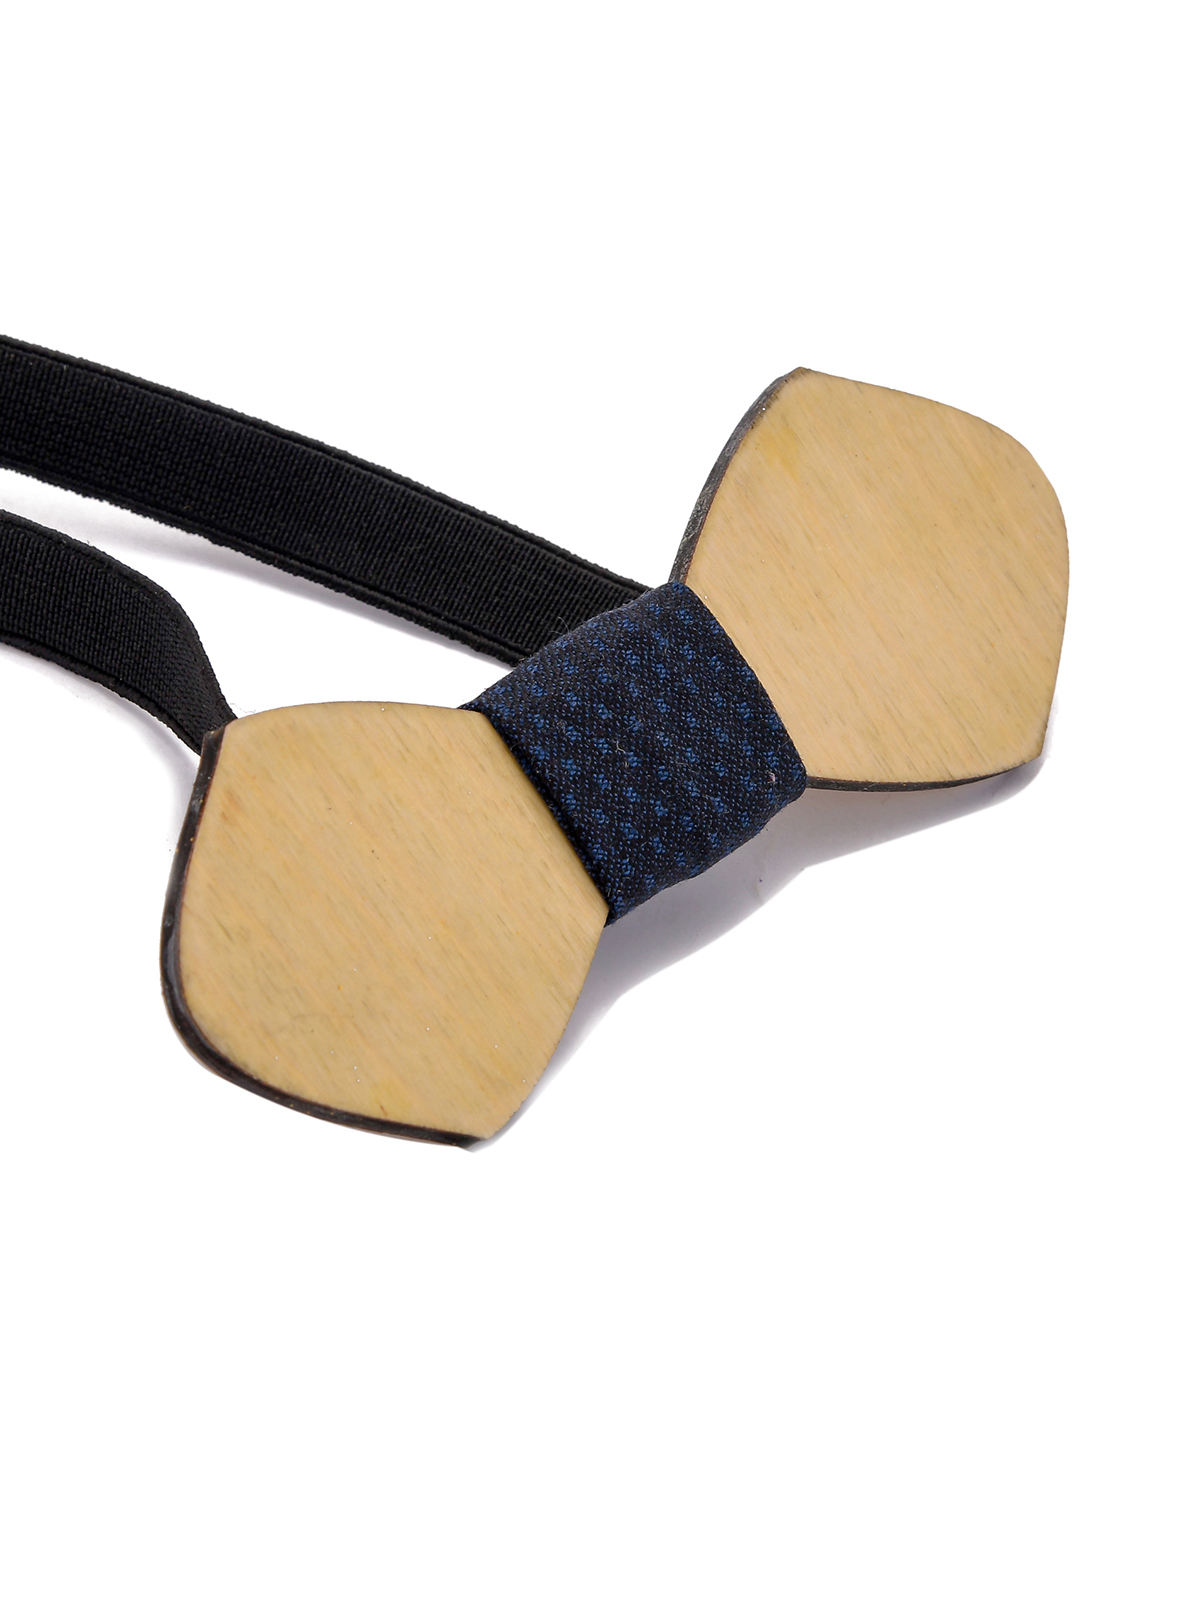 Wooden Bow Tie Geometrical Shape